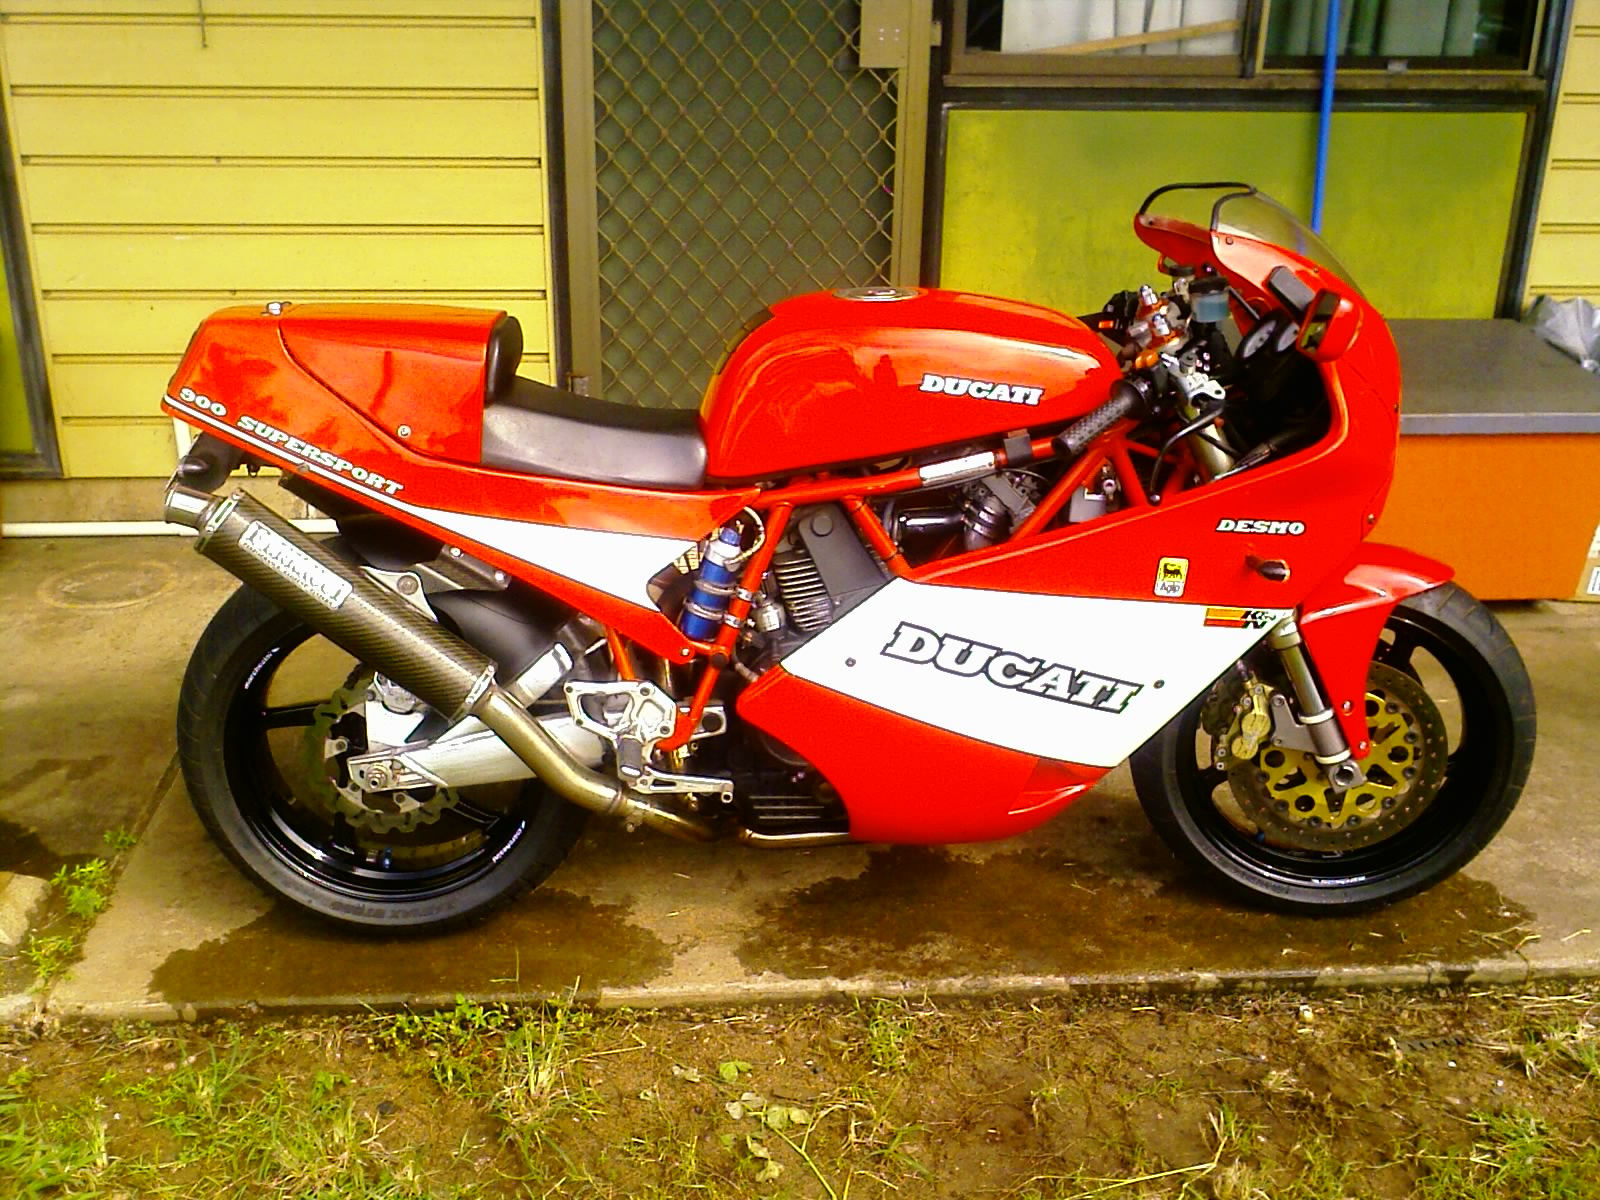 need manual 89-90 900ss for my rebuild - page 2 - ducati.ms - the